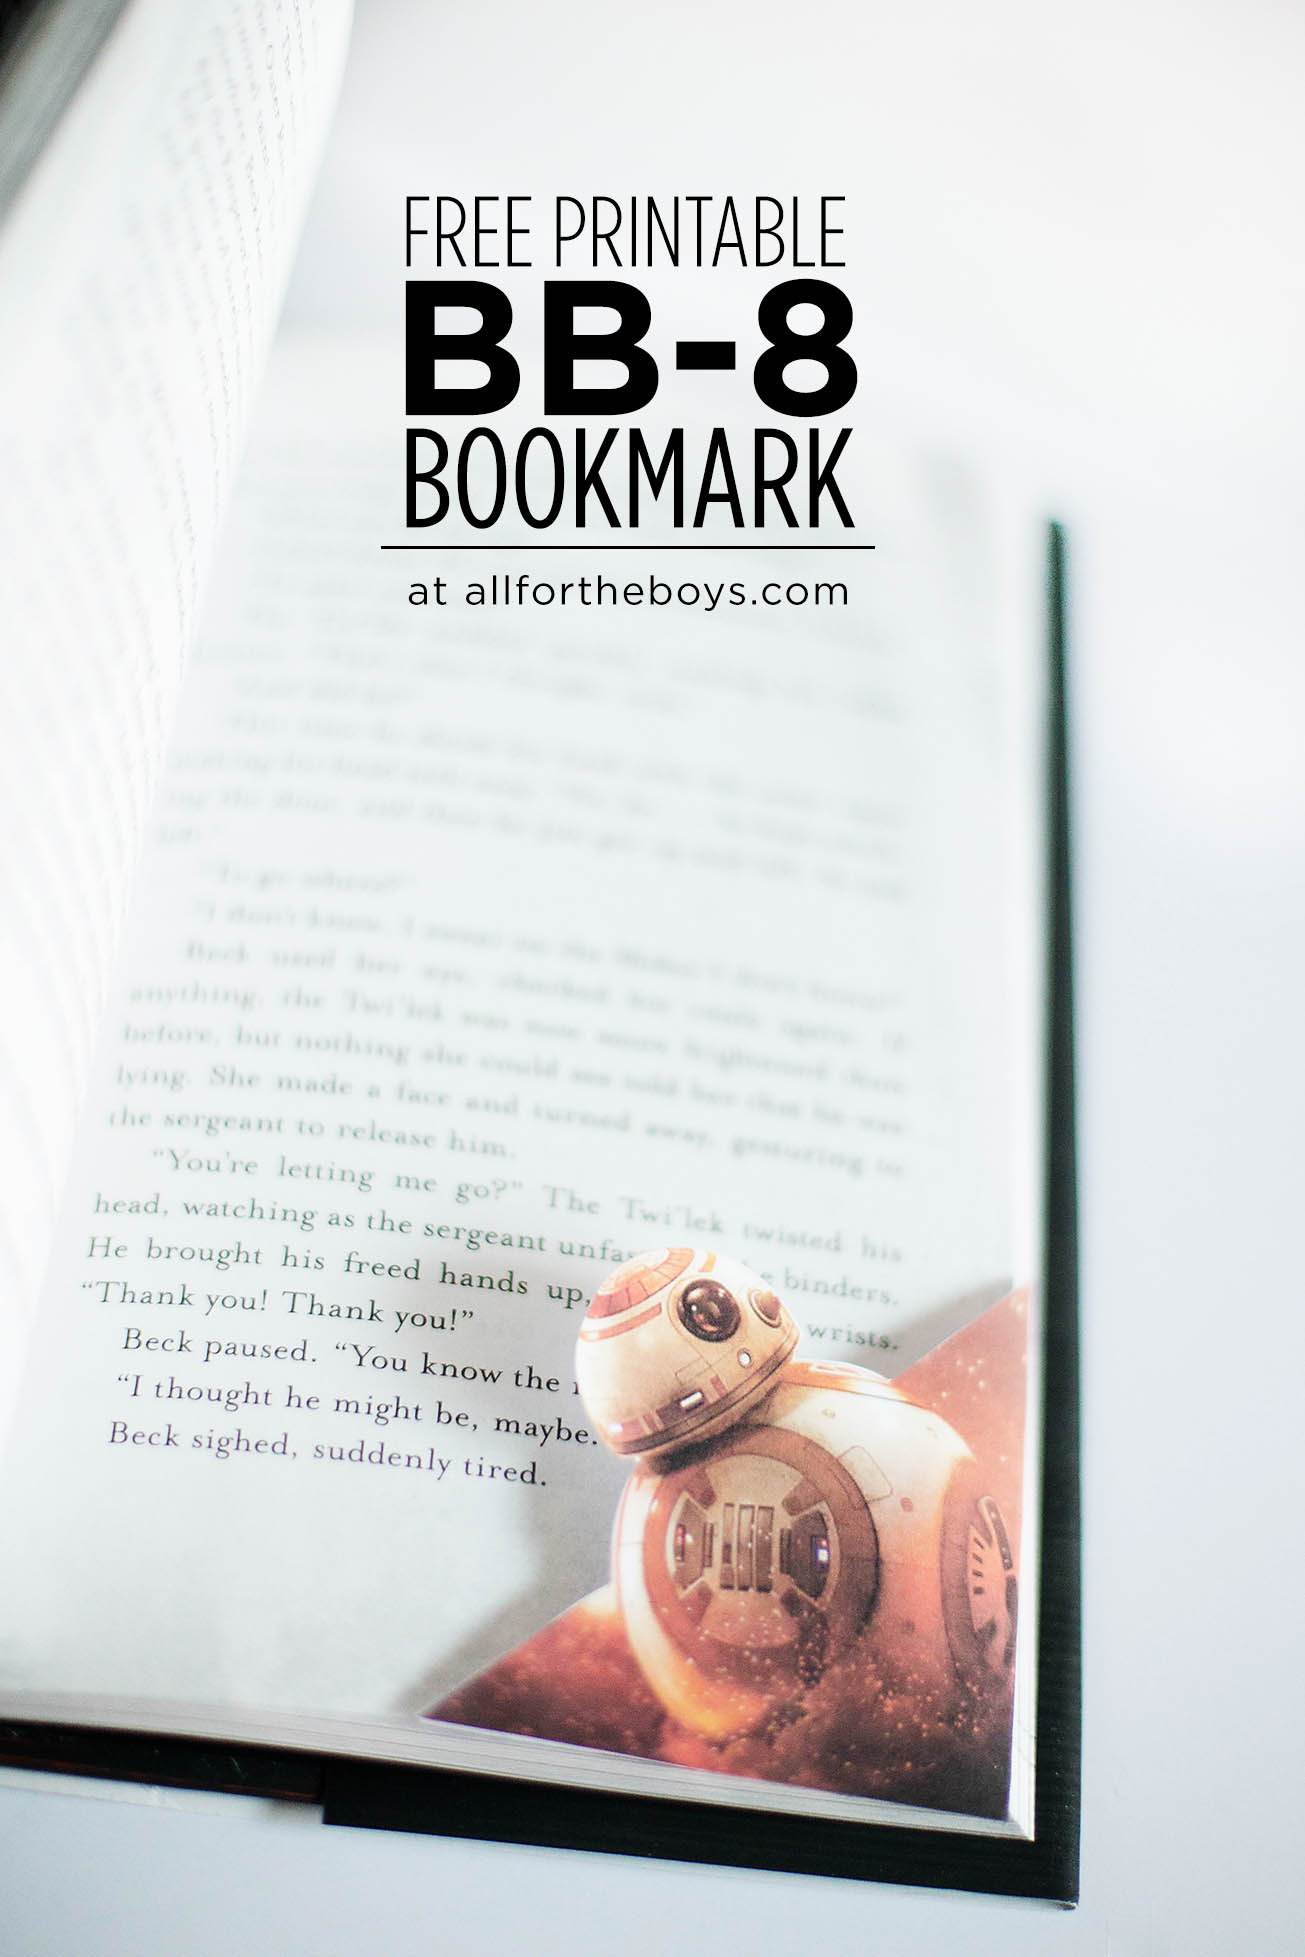 Free printable Star Wars BB-8 corner bookmark